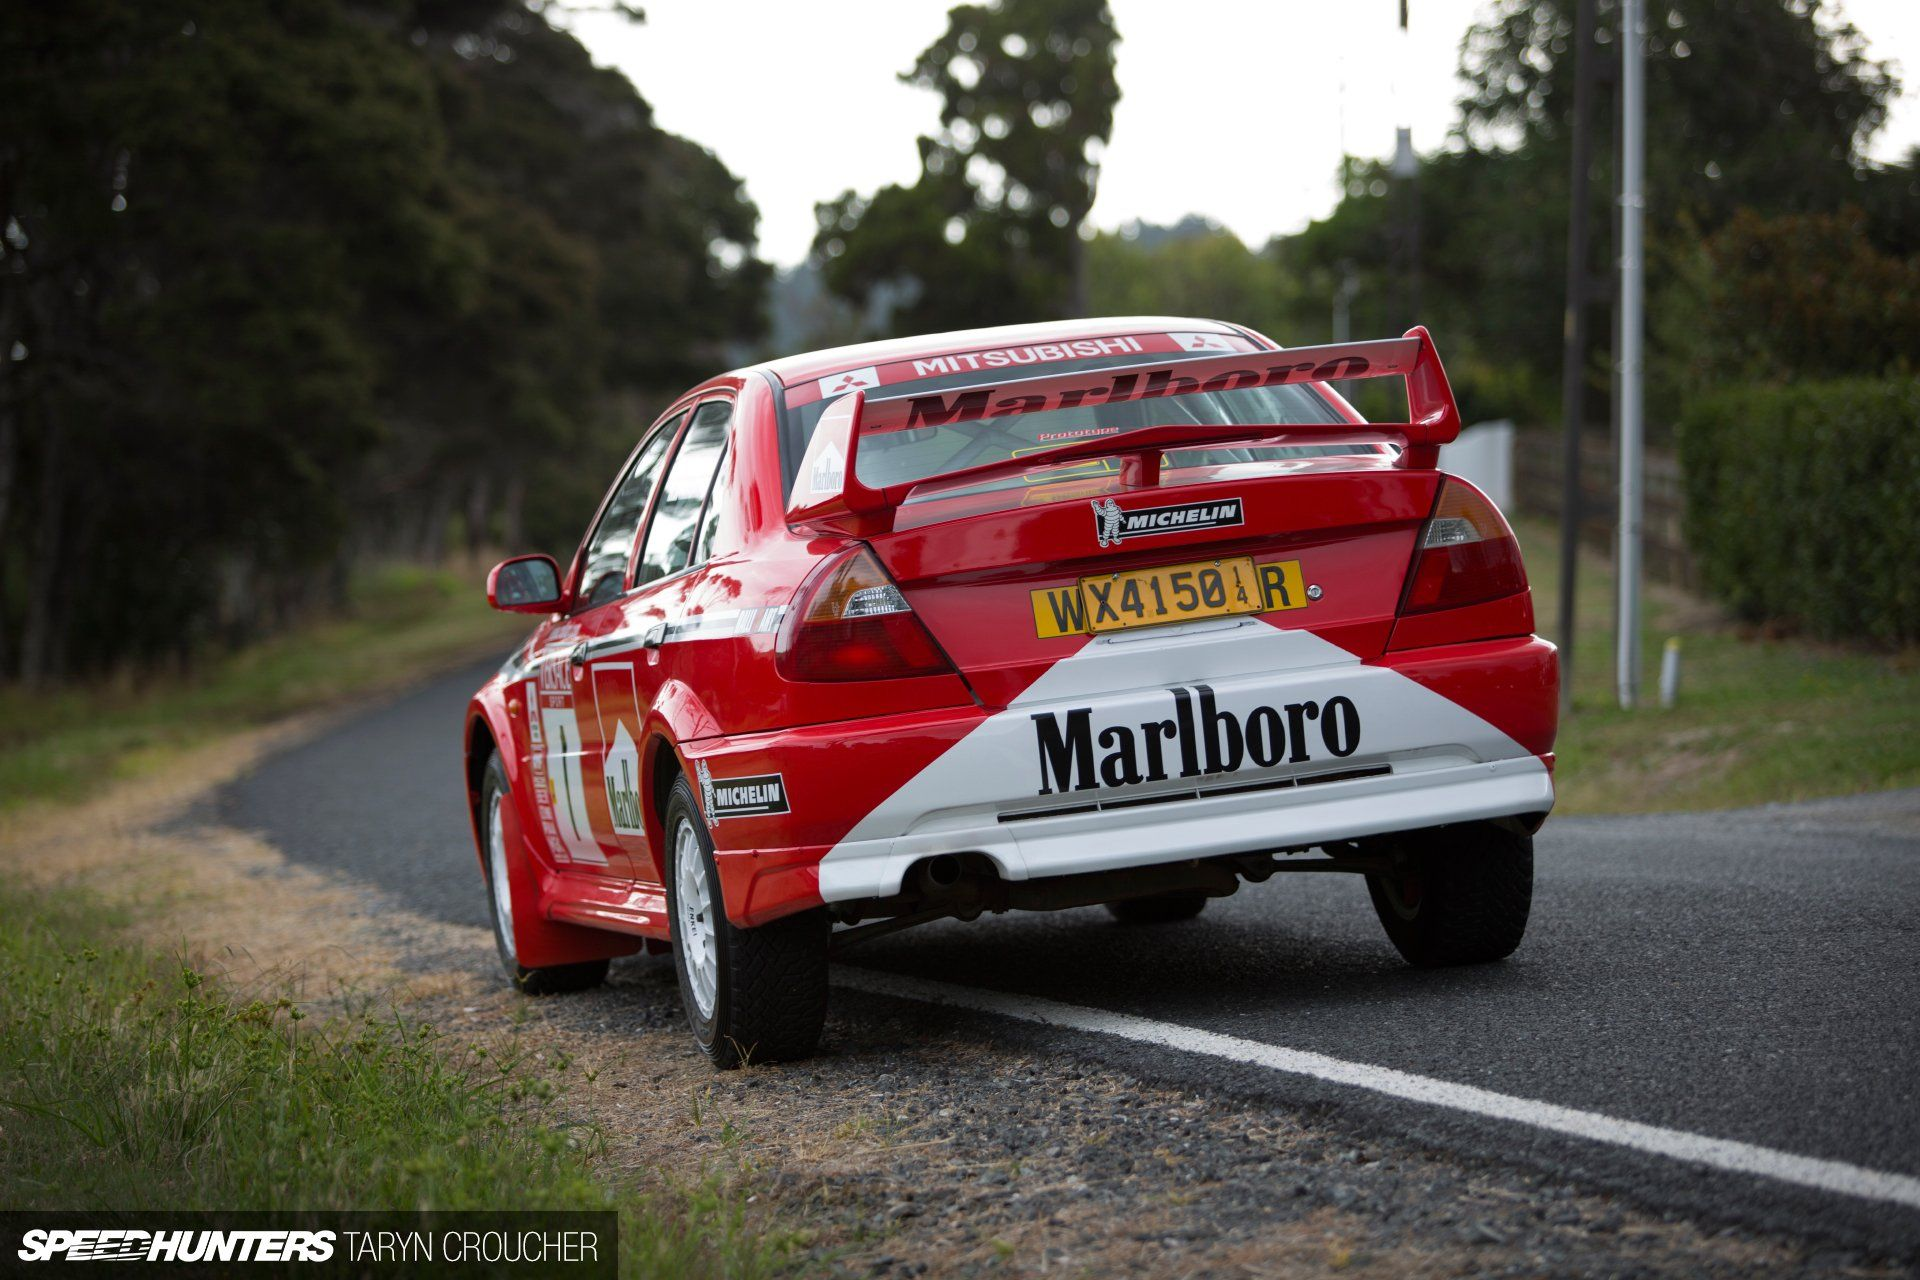 Mitsubishi Lancer Evo VI Rally Car | Classic Cars | Pinterest ...